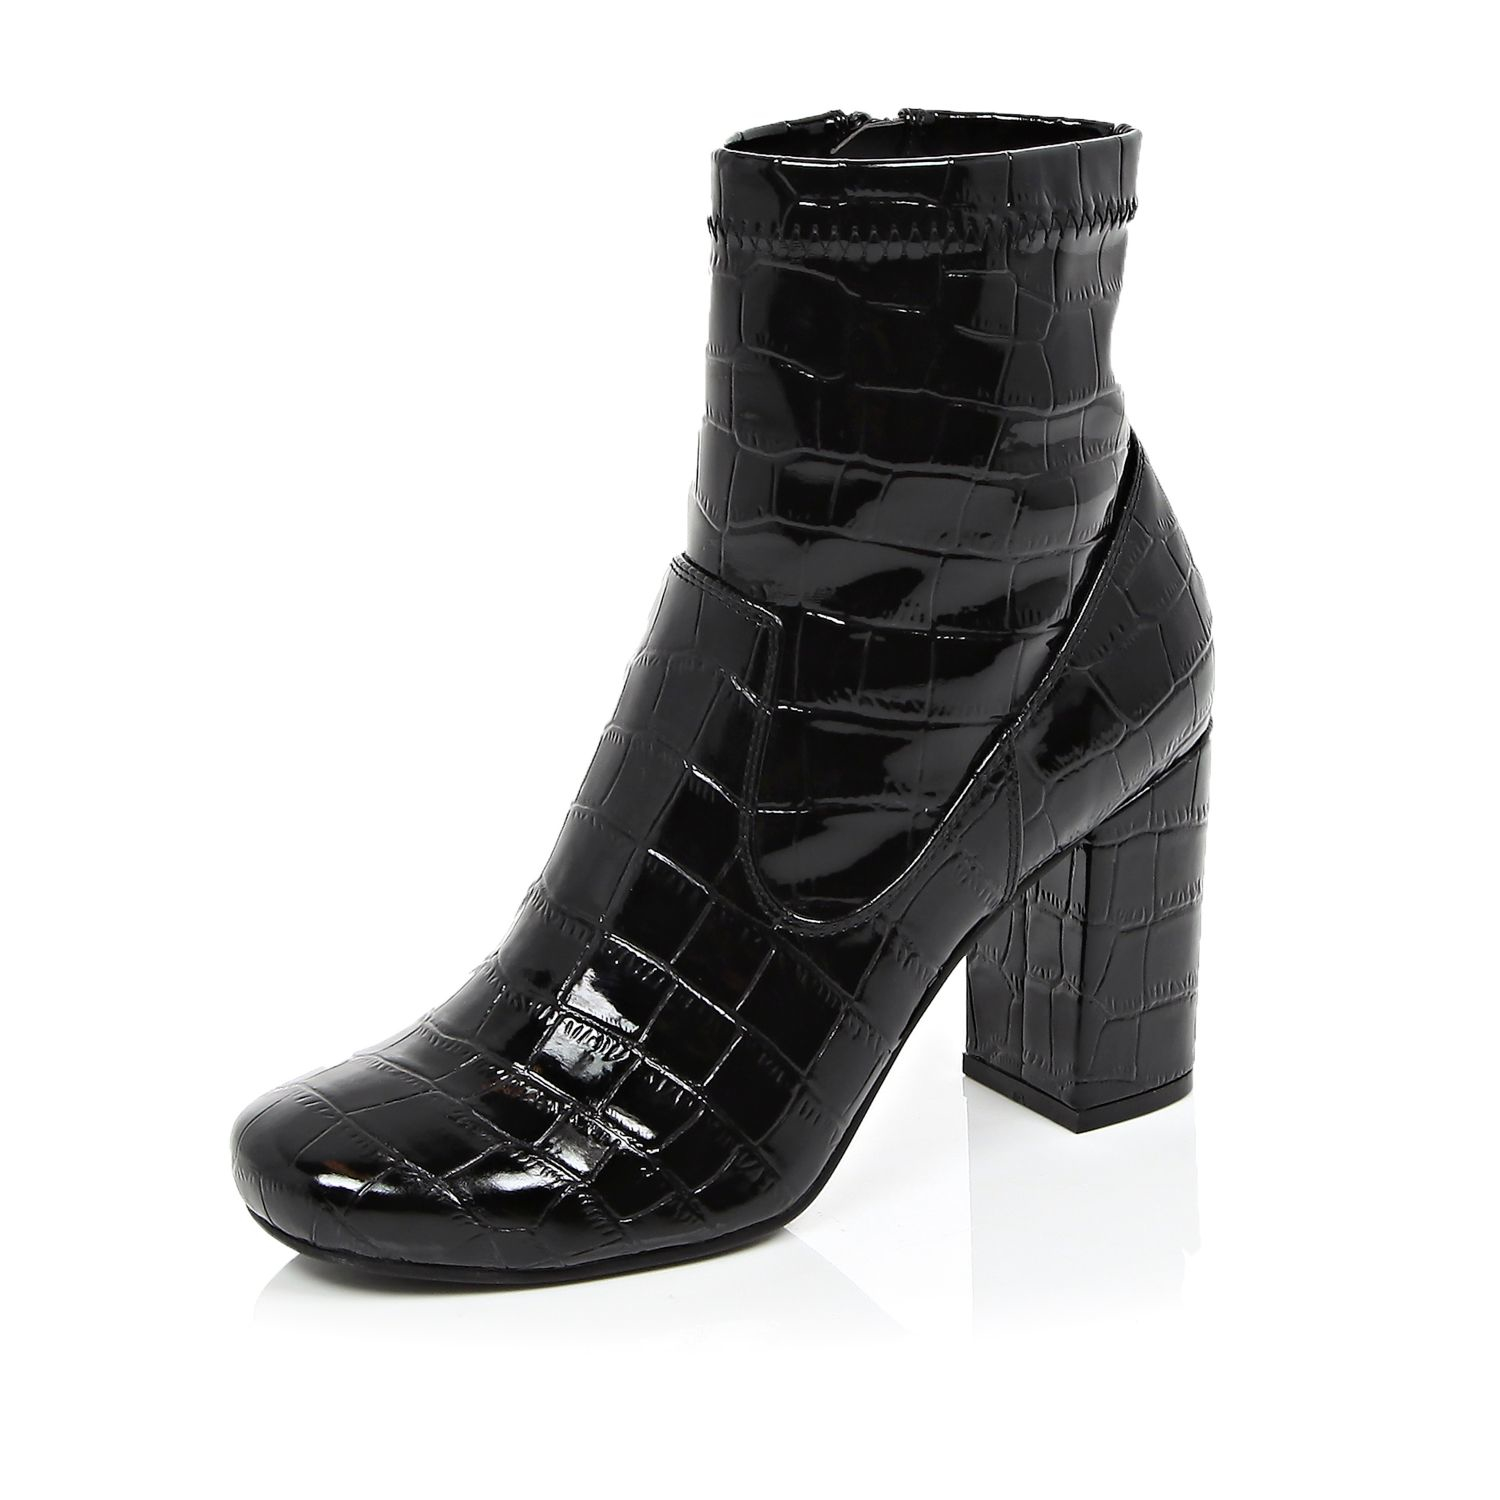 0d3ef6a7fe2b Lyst - River Island Black Patent Croc Heeled Ankle Boots in Black